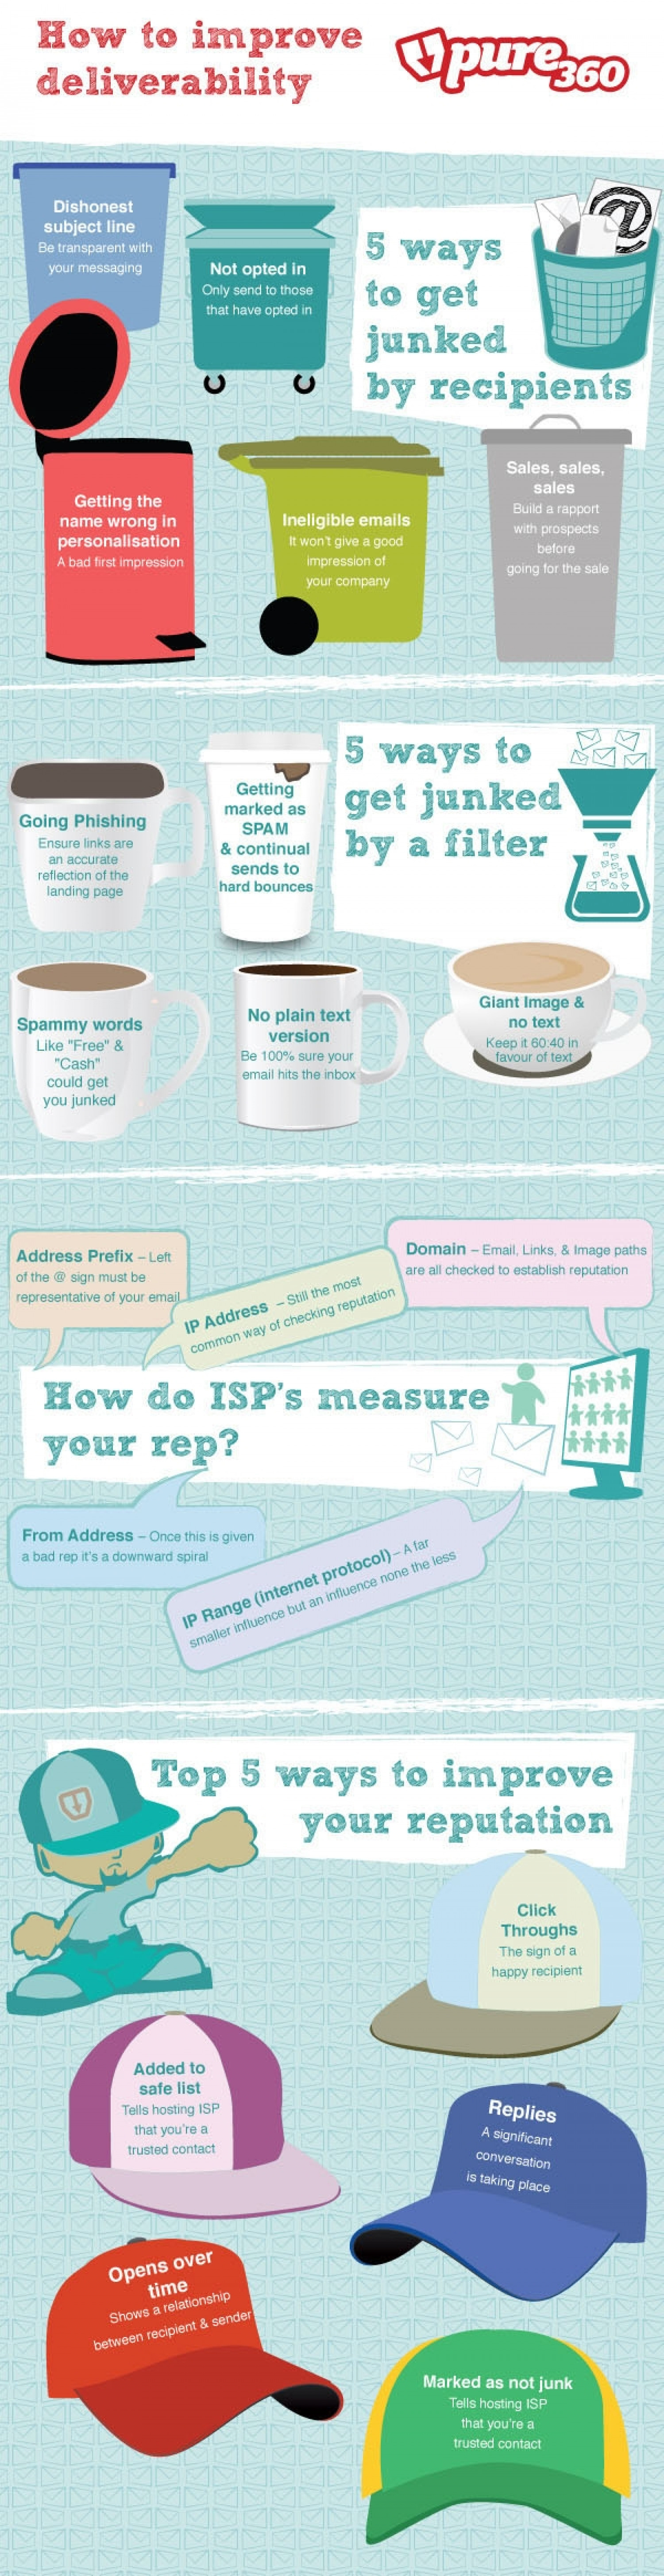 How to improve Deliverability Infographic